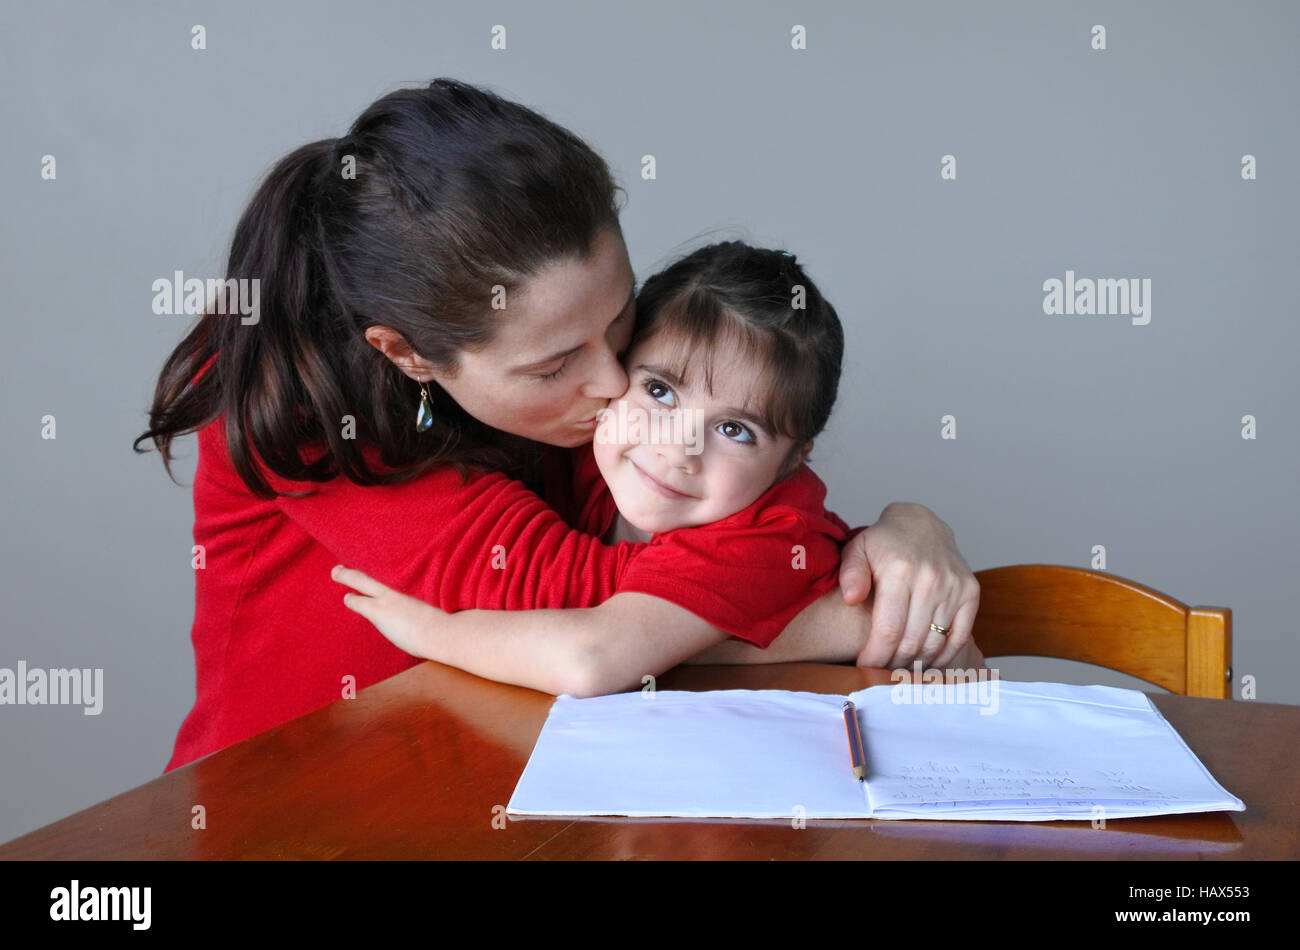 Mother Woman Age 30 35 Helping Her Daughter Girl Age 6 7 With